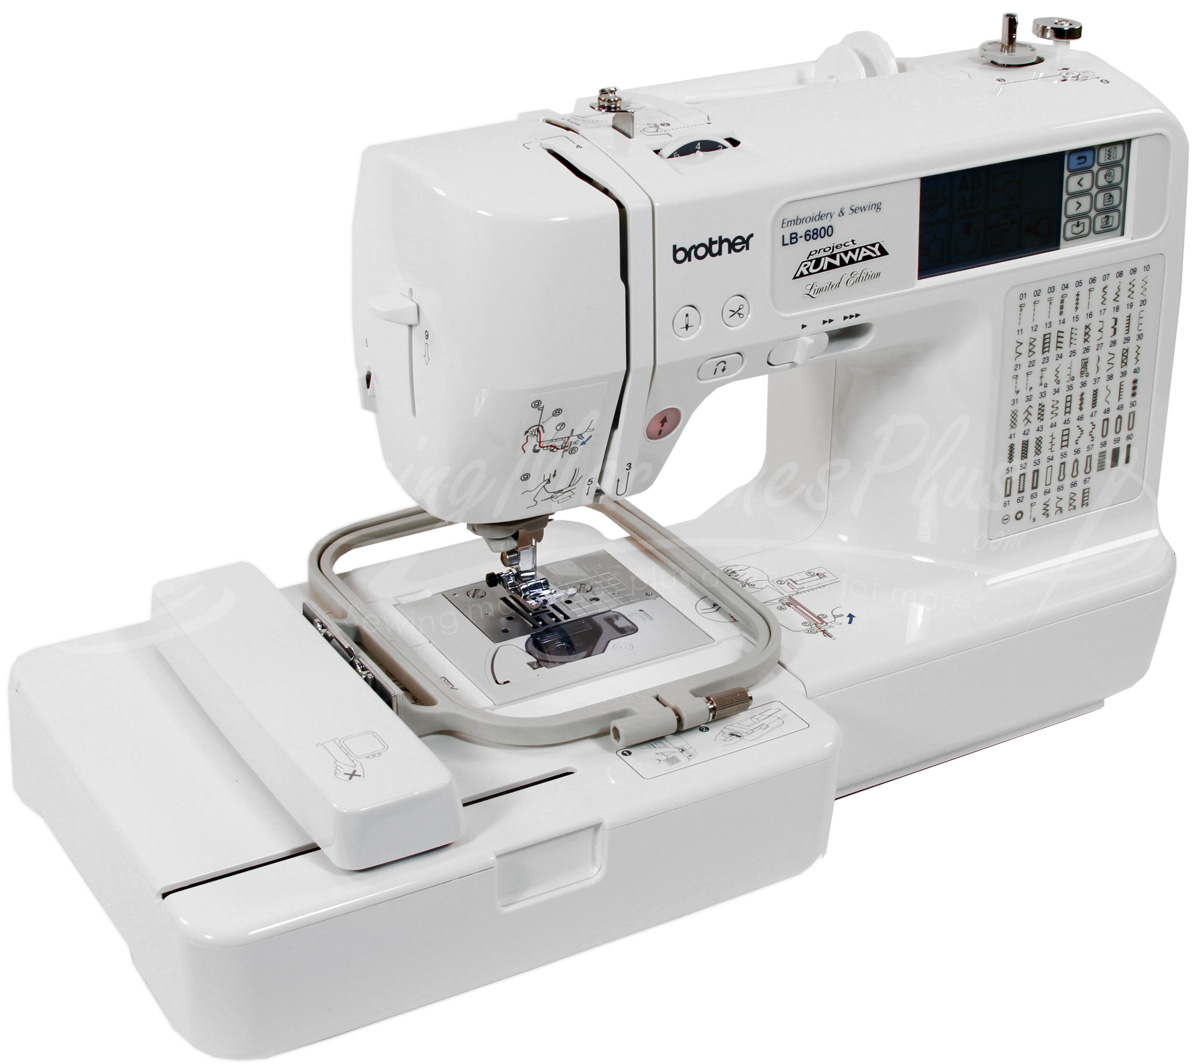 Brother Lb6800 Prw Project Runway Limited Edition Sewing